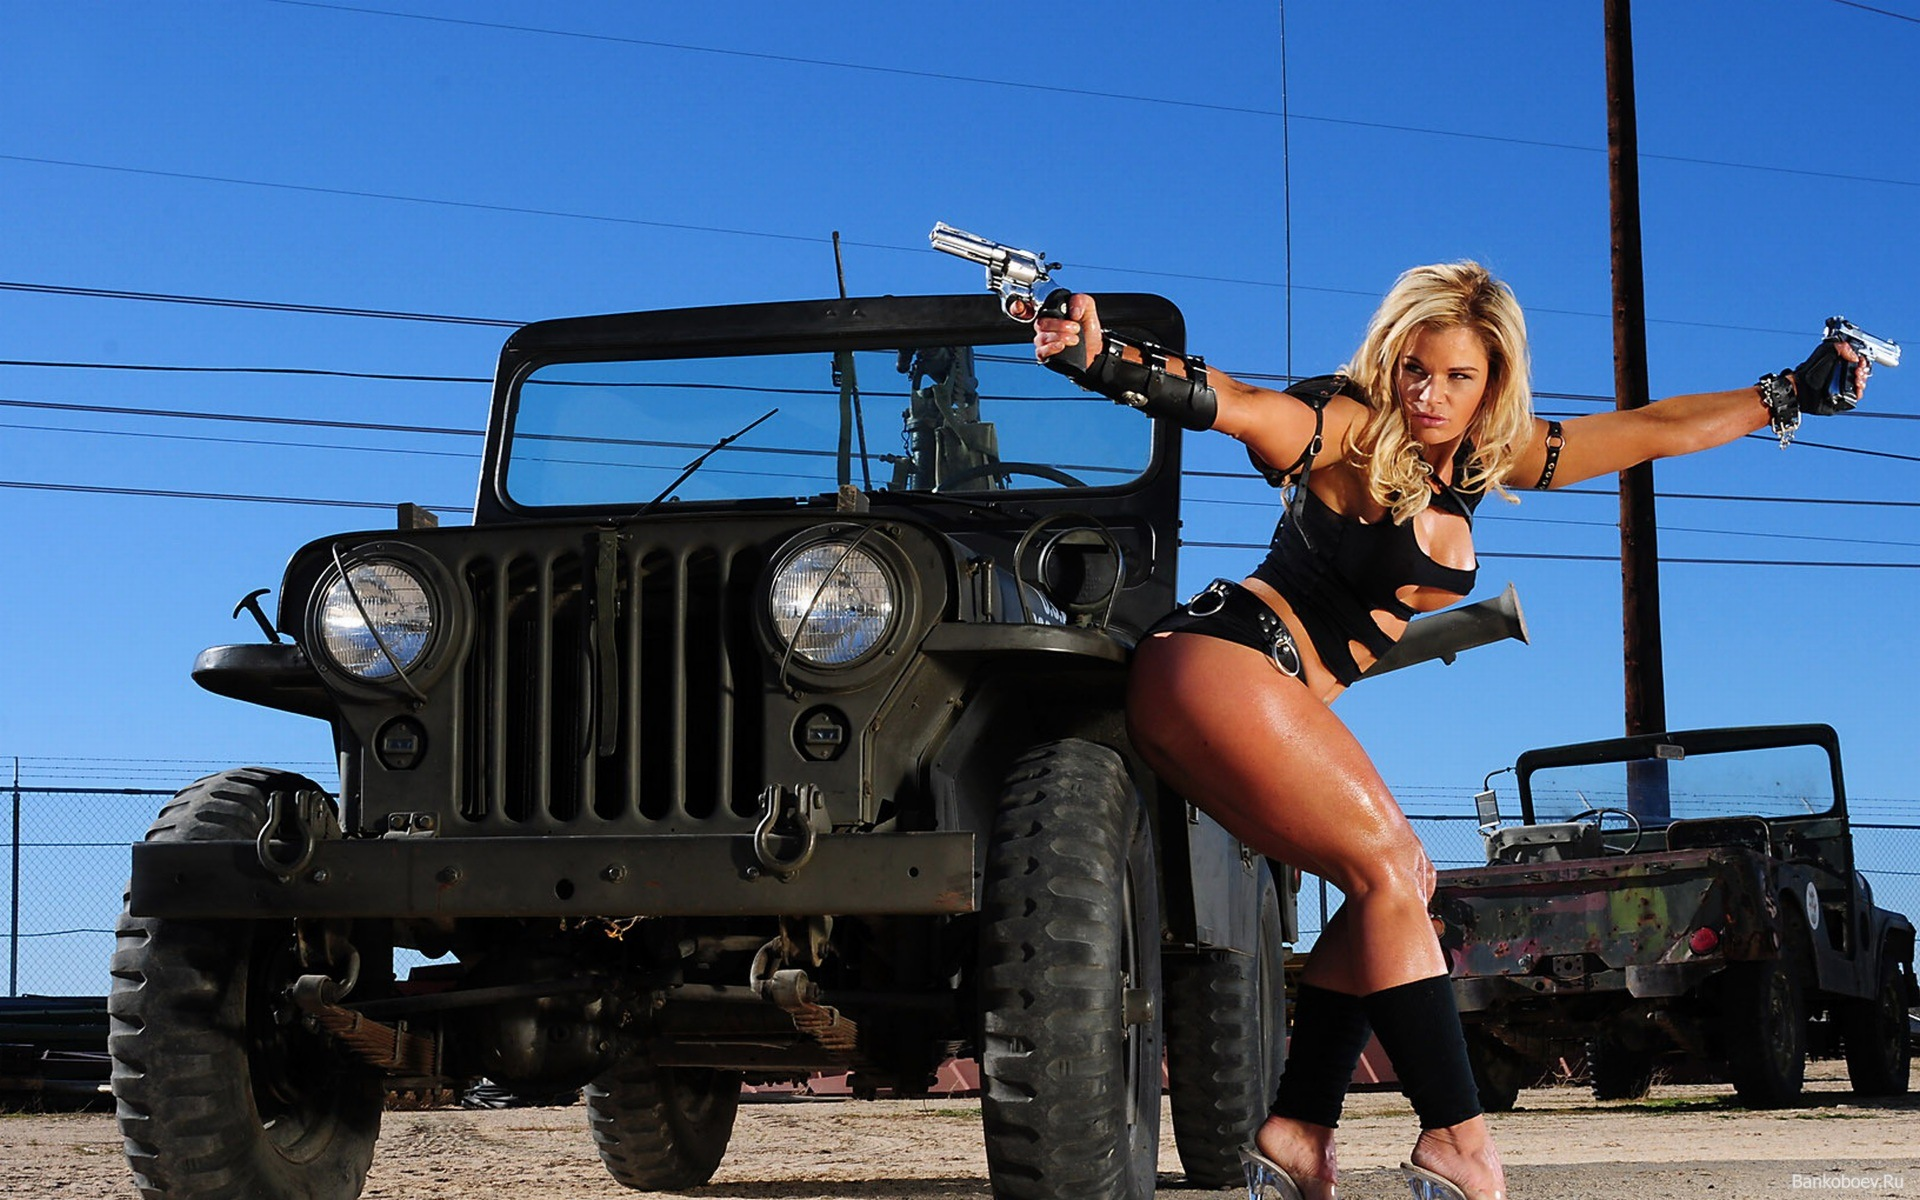 Military girl and a jeep desktop wallpaper, pictures Military girl and ...